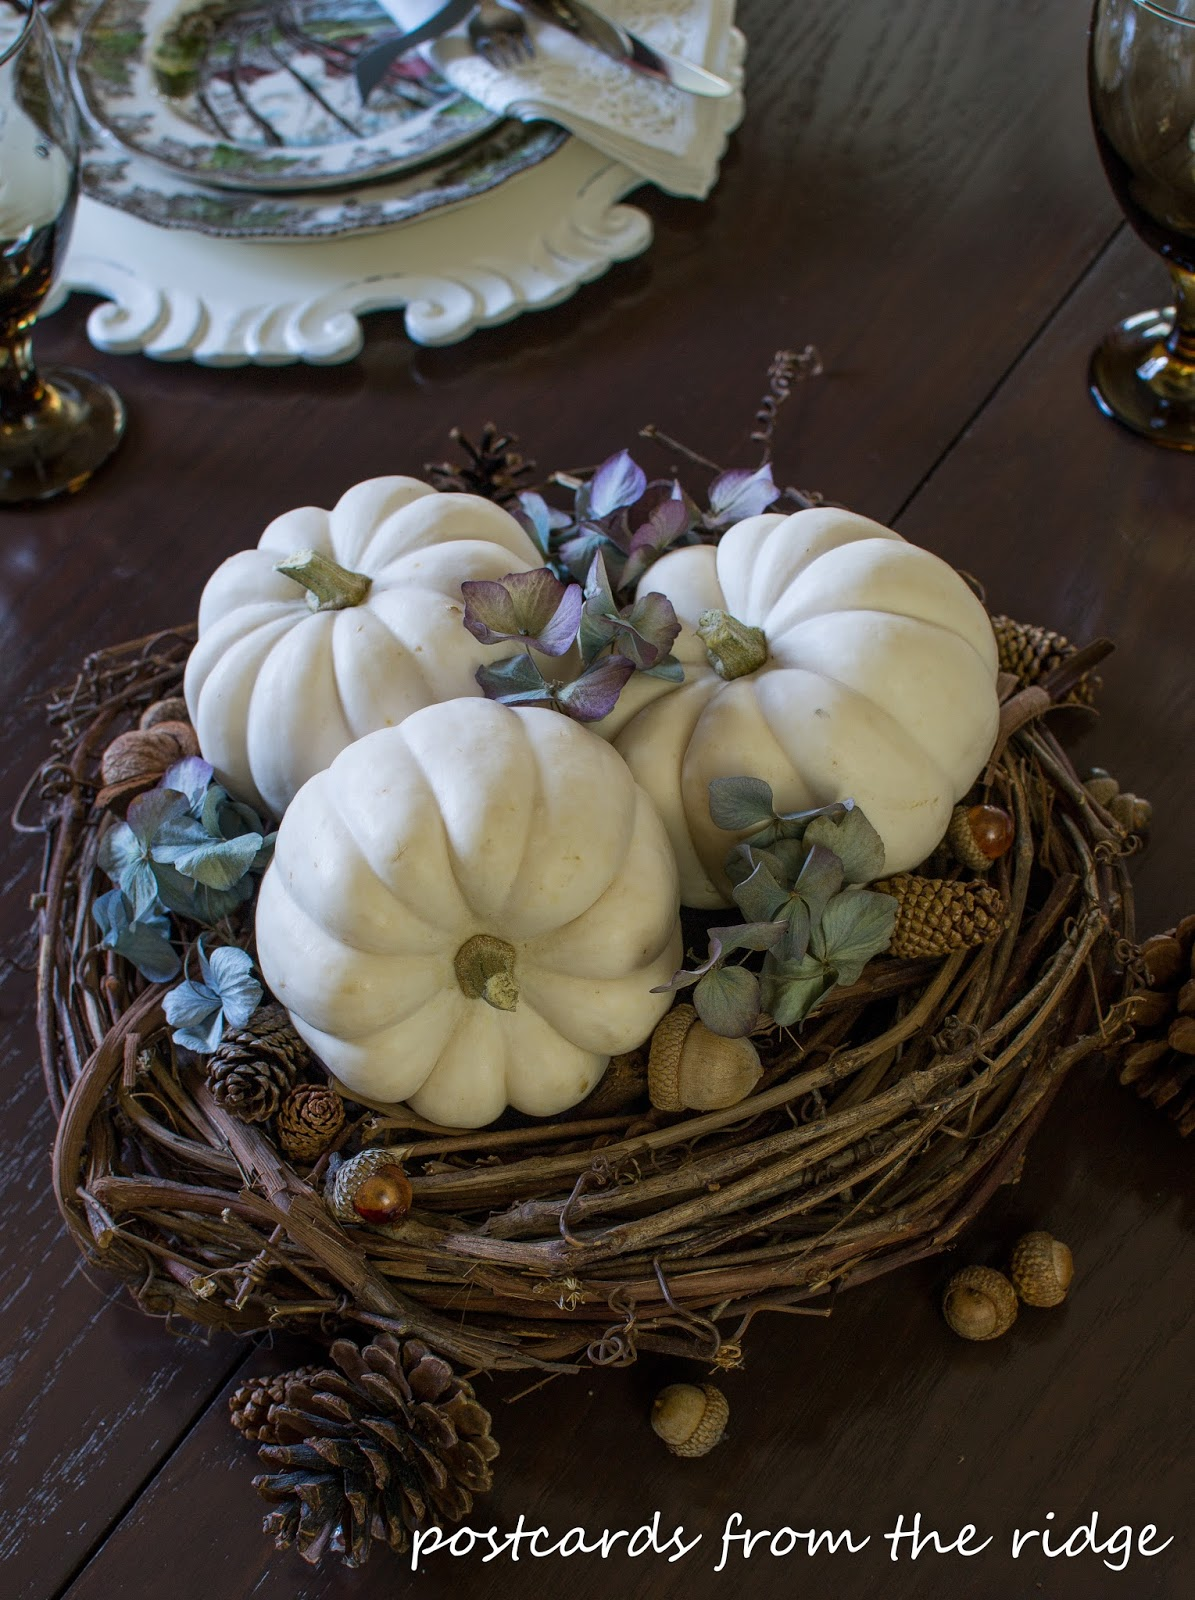 I love white pumpkins! Such a pretty centerpiece and lots of other great ideas for fall decor using vintage and farmhouse style items.